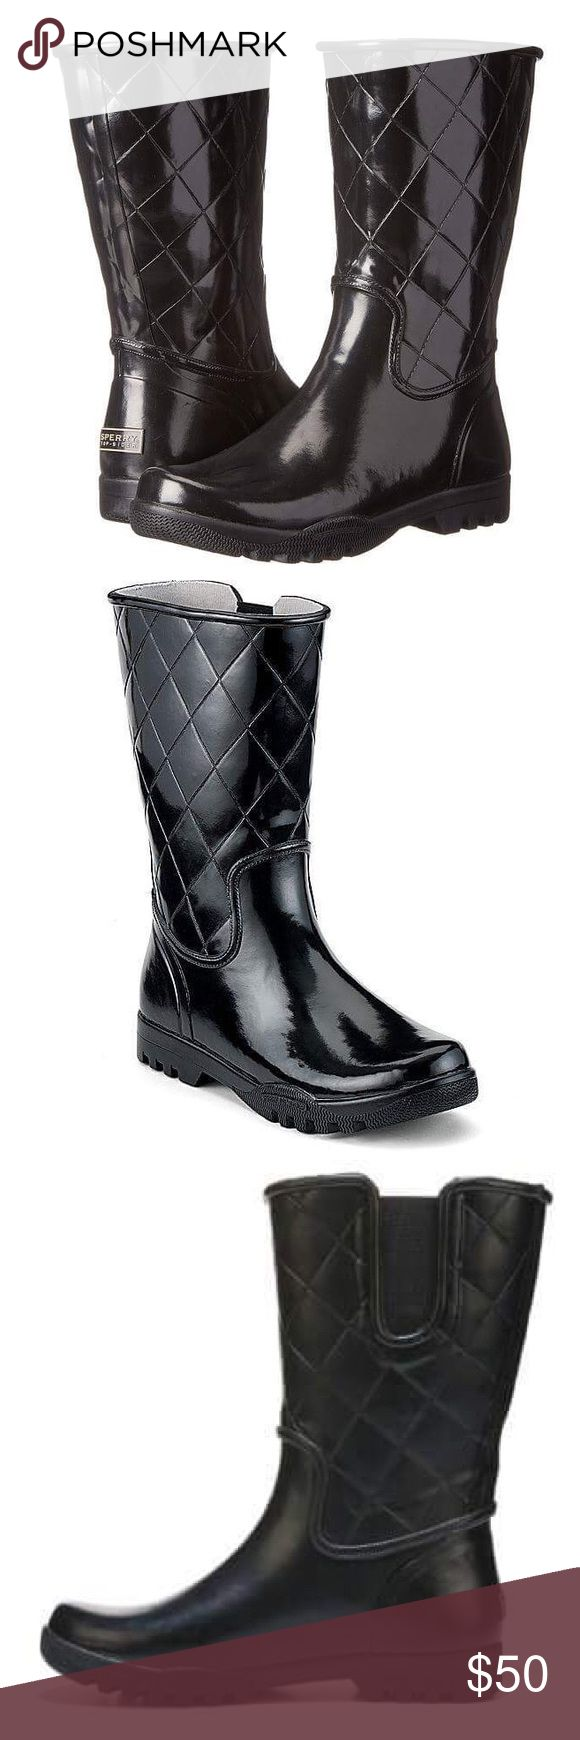 NEW Sperry Nellie Quilted Black Rain Boots Sperry Top-Sider Nellie Quilted Black Rain Boots. New without box! Gorgeous! Sperry Shoes Winter & Rain Boots